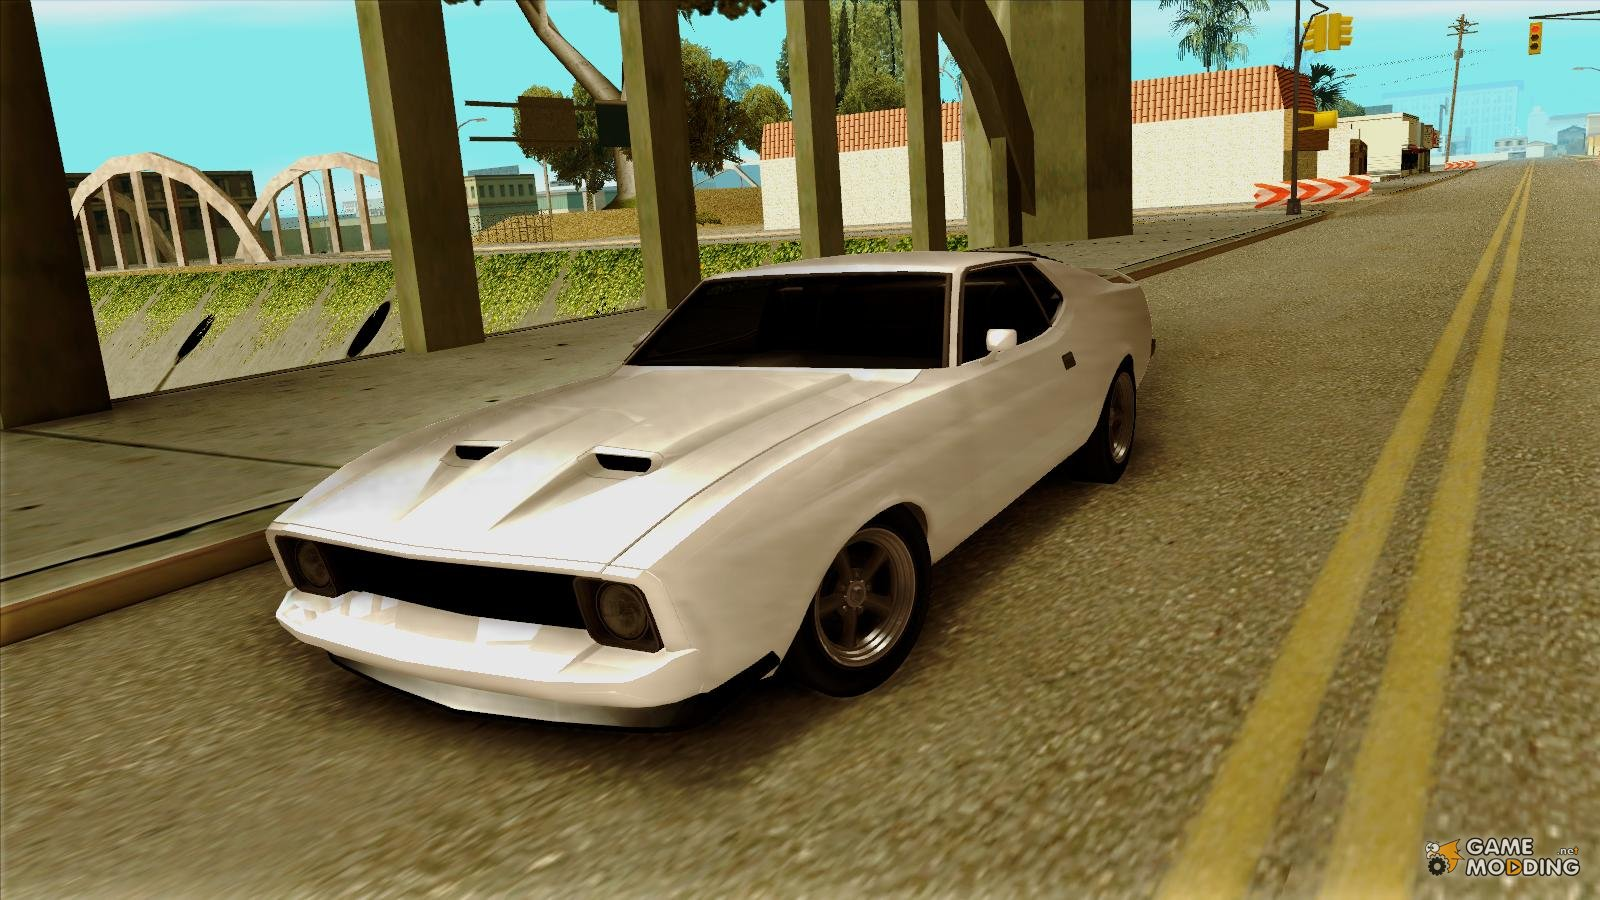 Download image Gta V Bullet Car PC, Android, iPhone and iPad ...